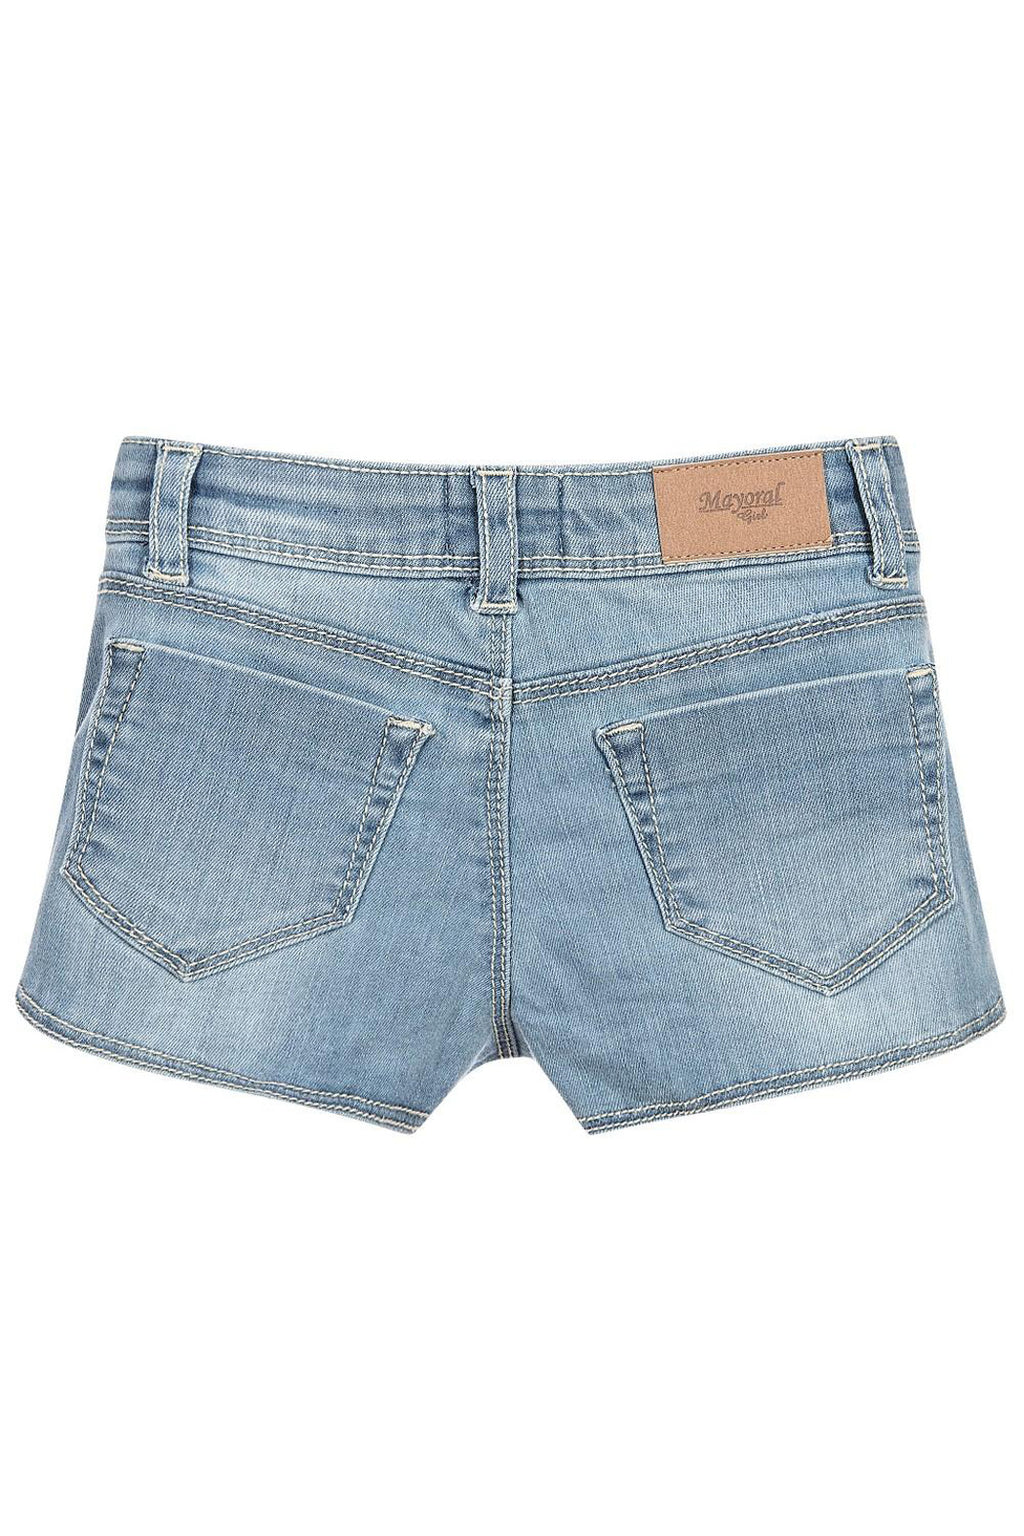 Mayoral - Denim Appliquê Shorts - kkgivingtree - K&K's